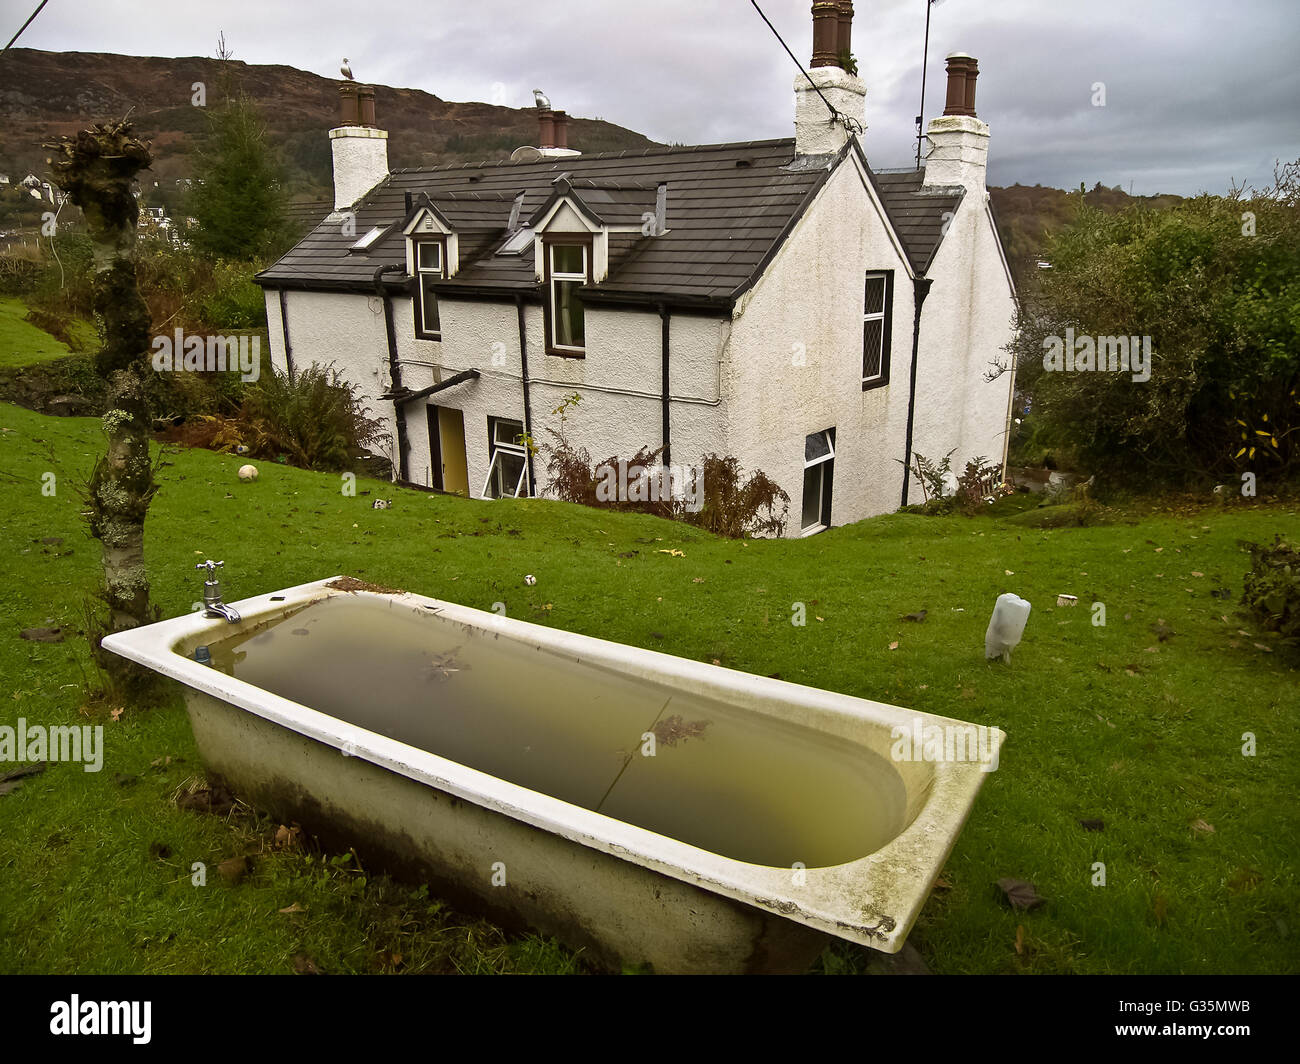 Outside Bathtub Stock Photos & Outside Bathtub Stock Images - Alamy